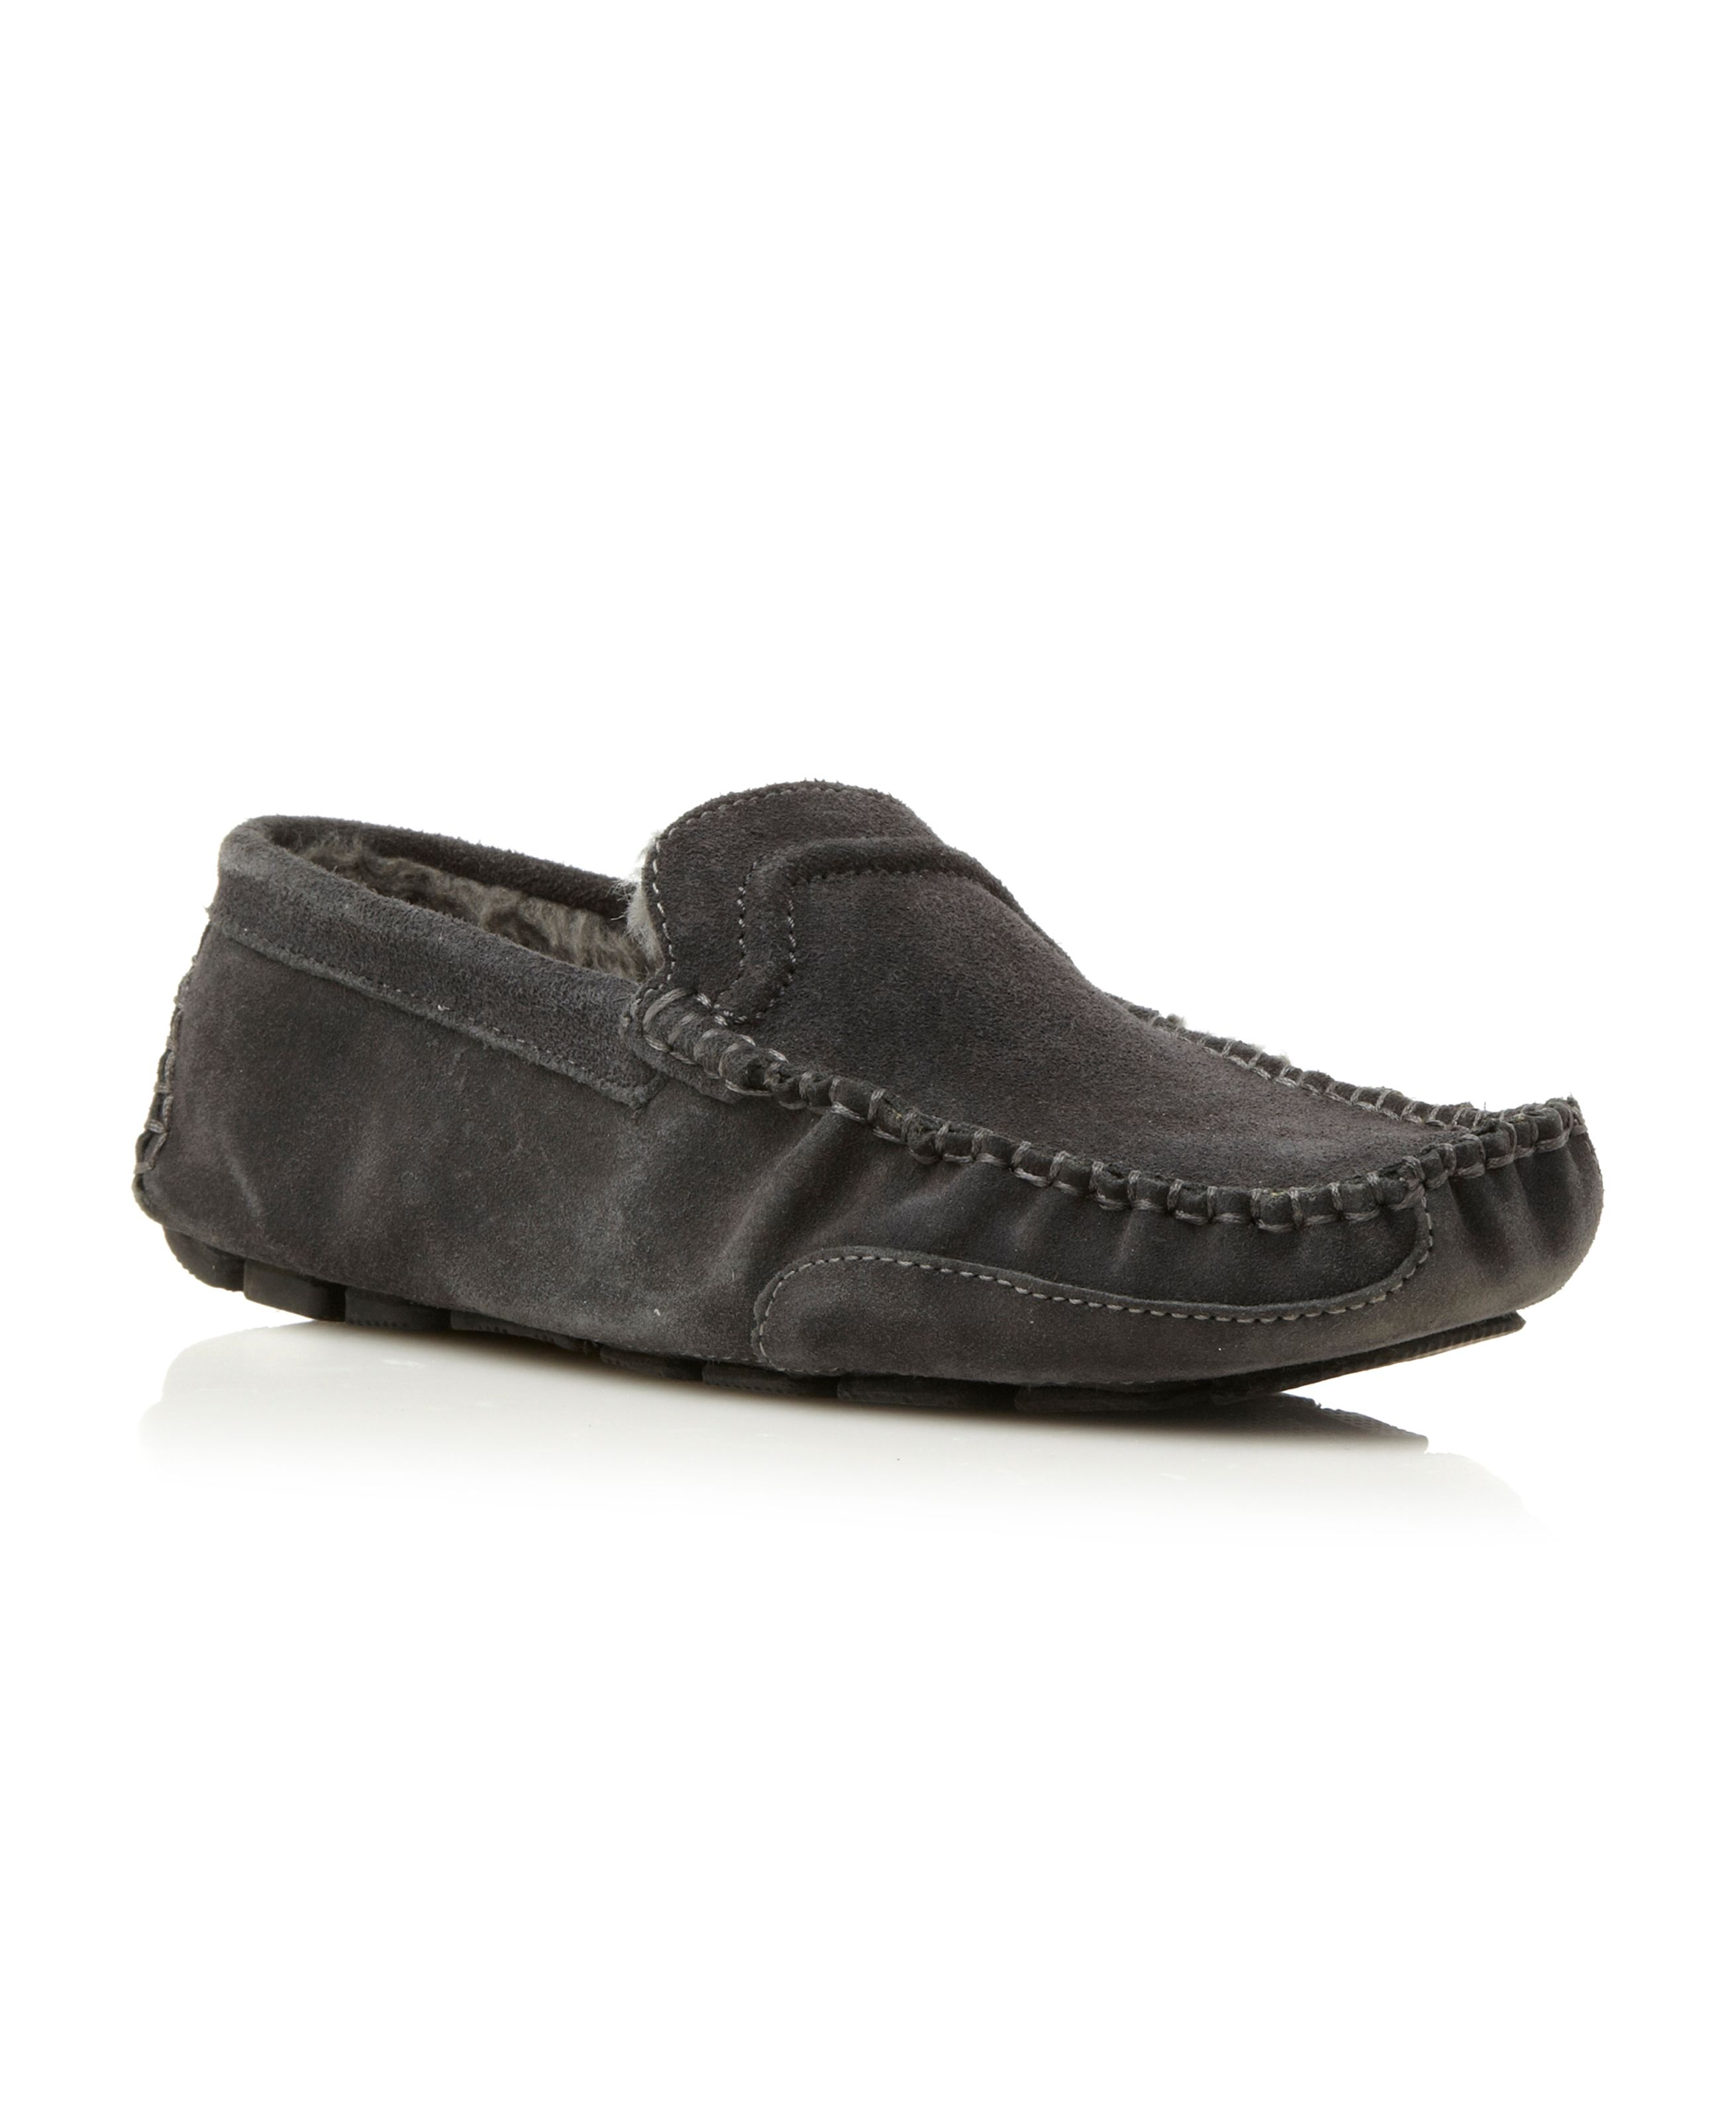 Furlong faux fur lined driver slippers